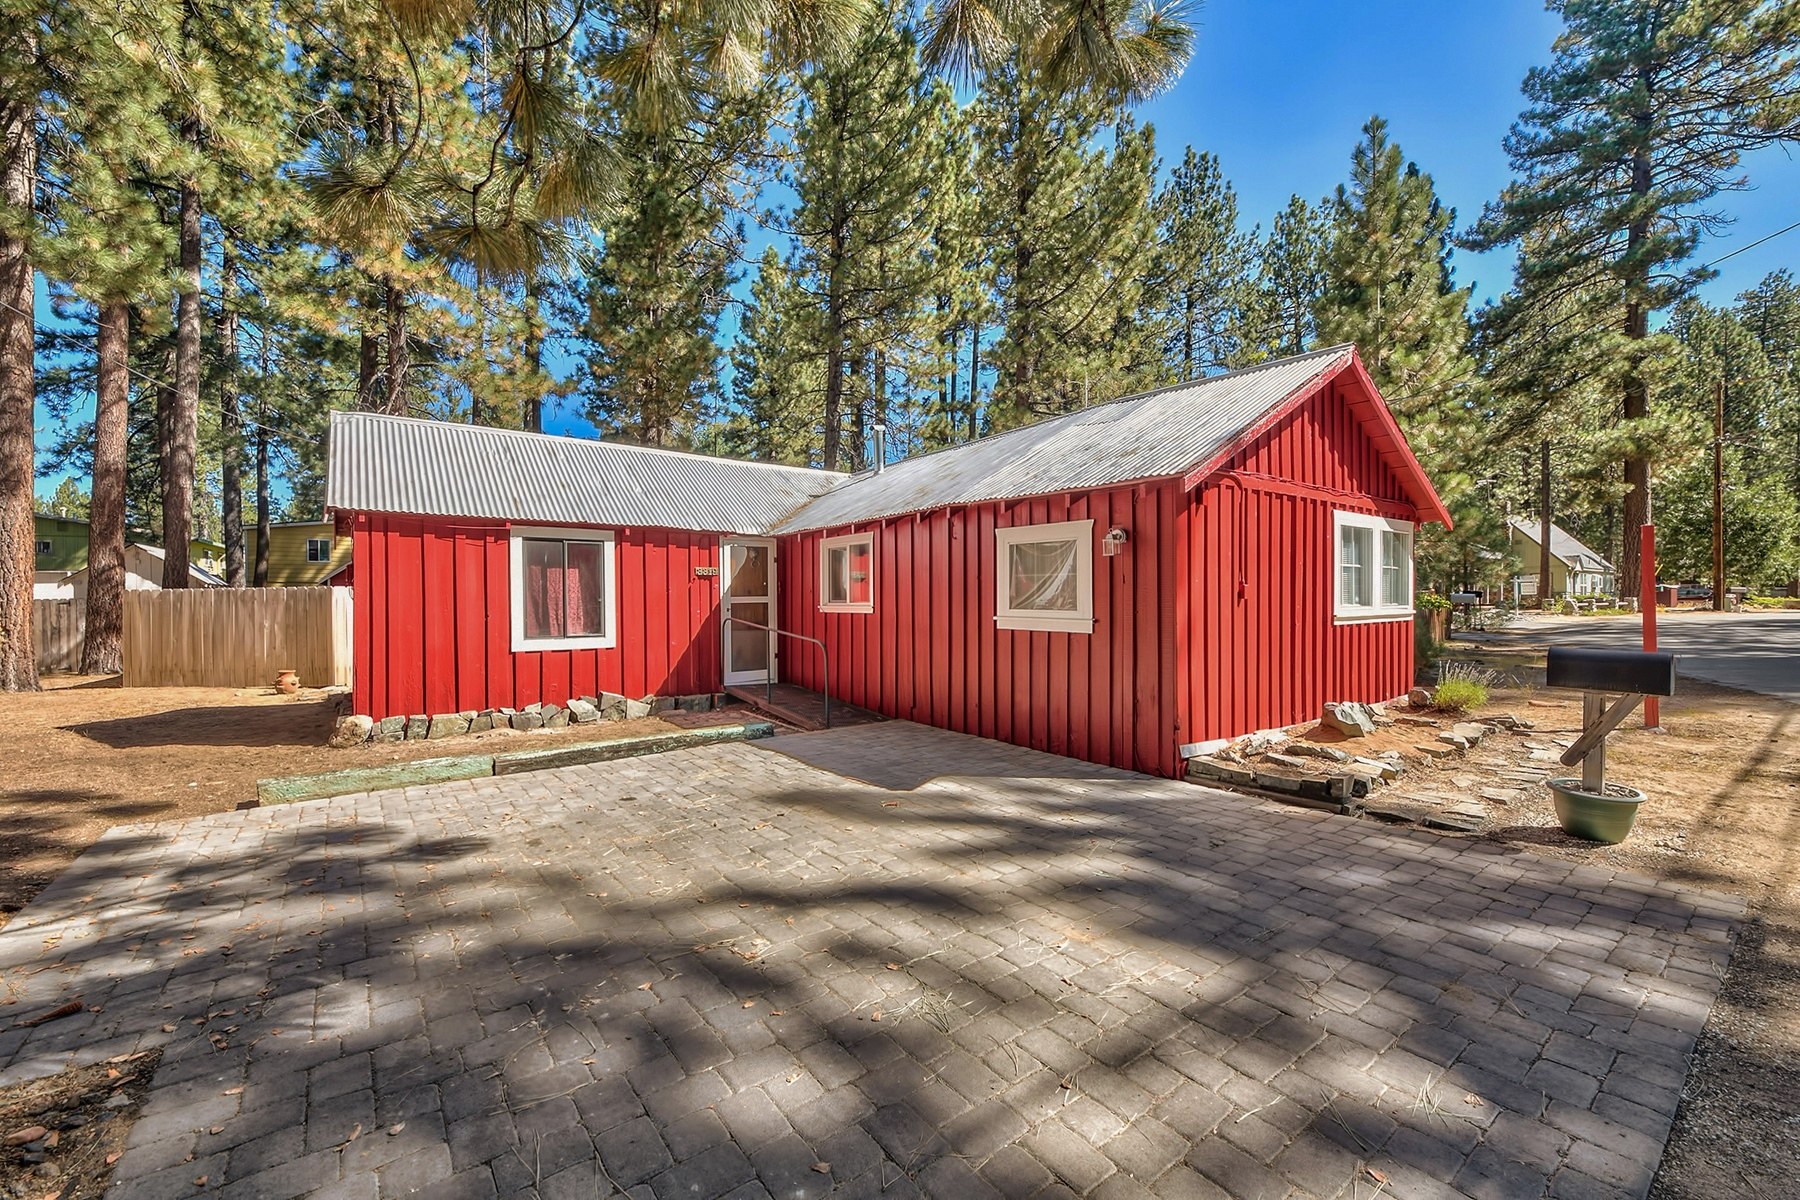 Property for Active at 3319 Deer Park Ave, South Lake Tahoe, CA 96150 3319 Deer Park Ave South Lake Tahoe, California 96150 United States